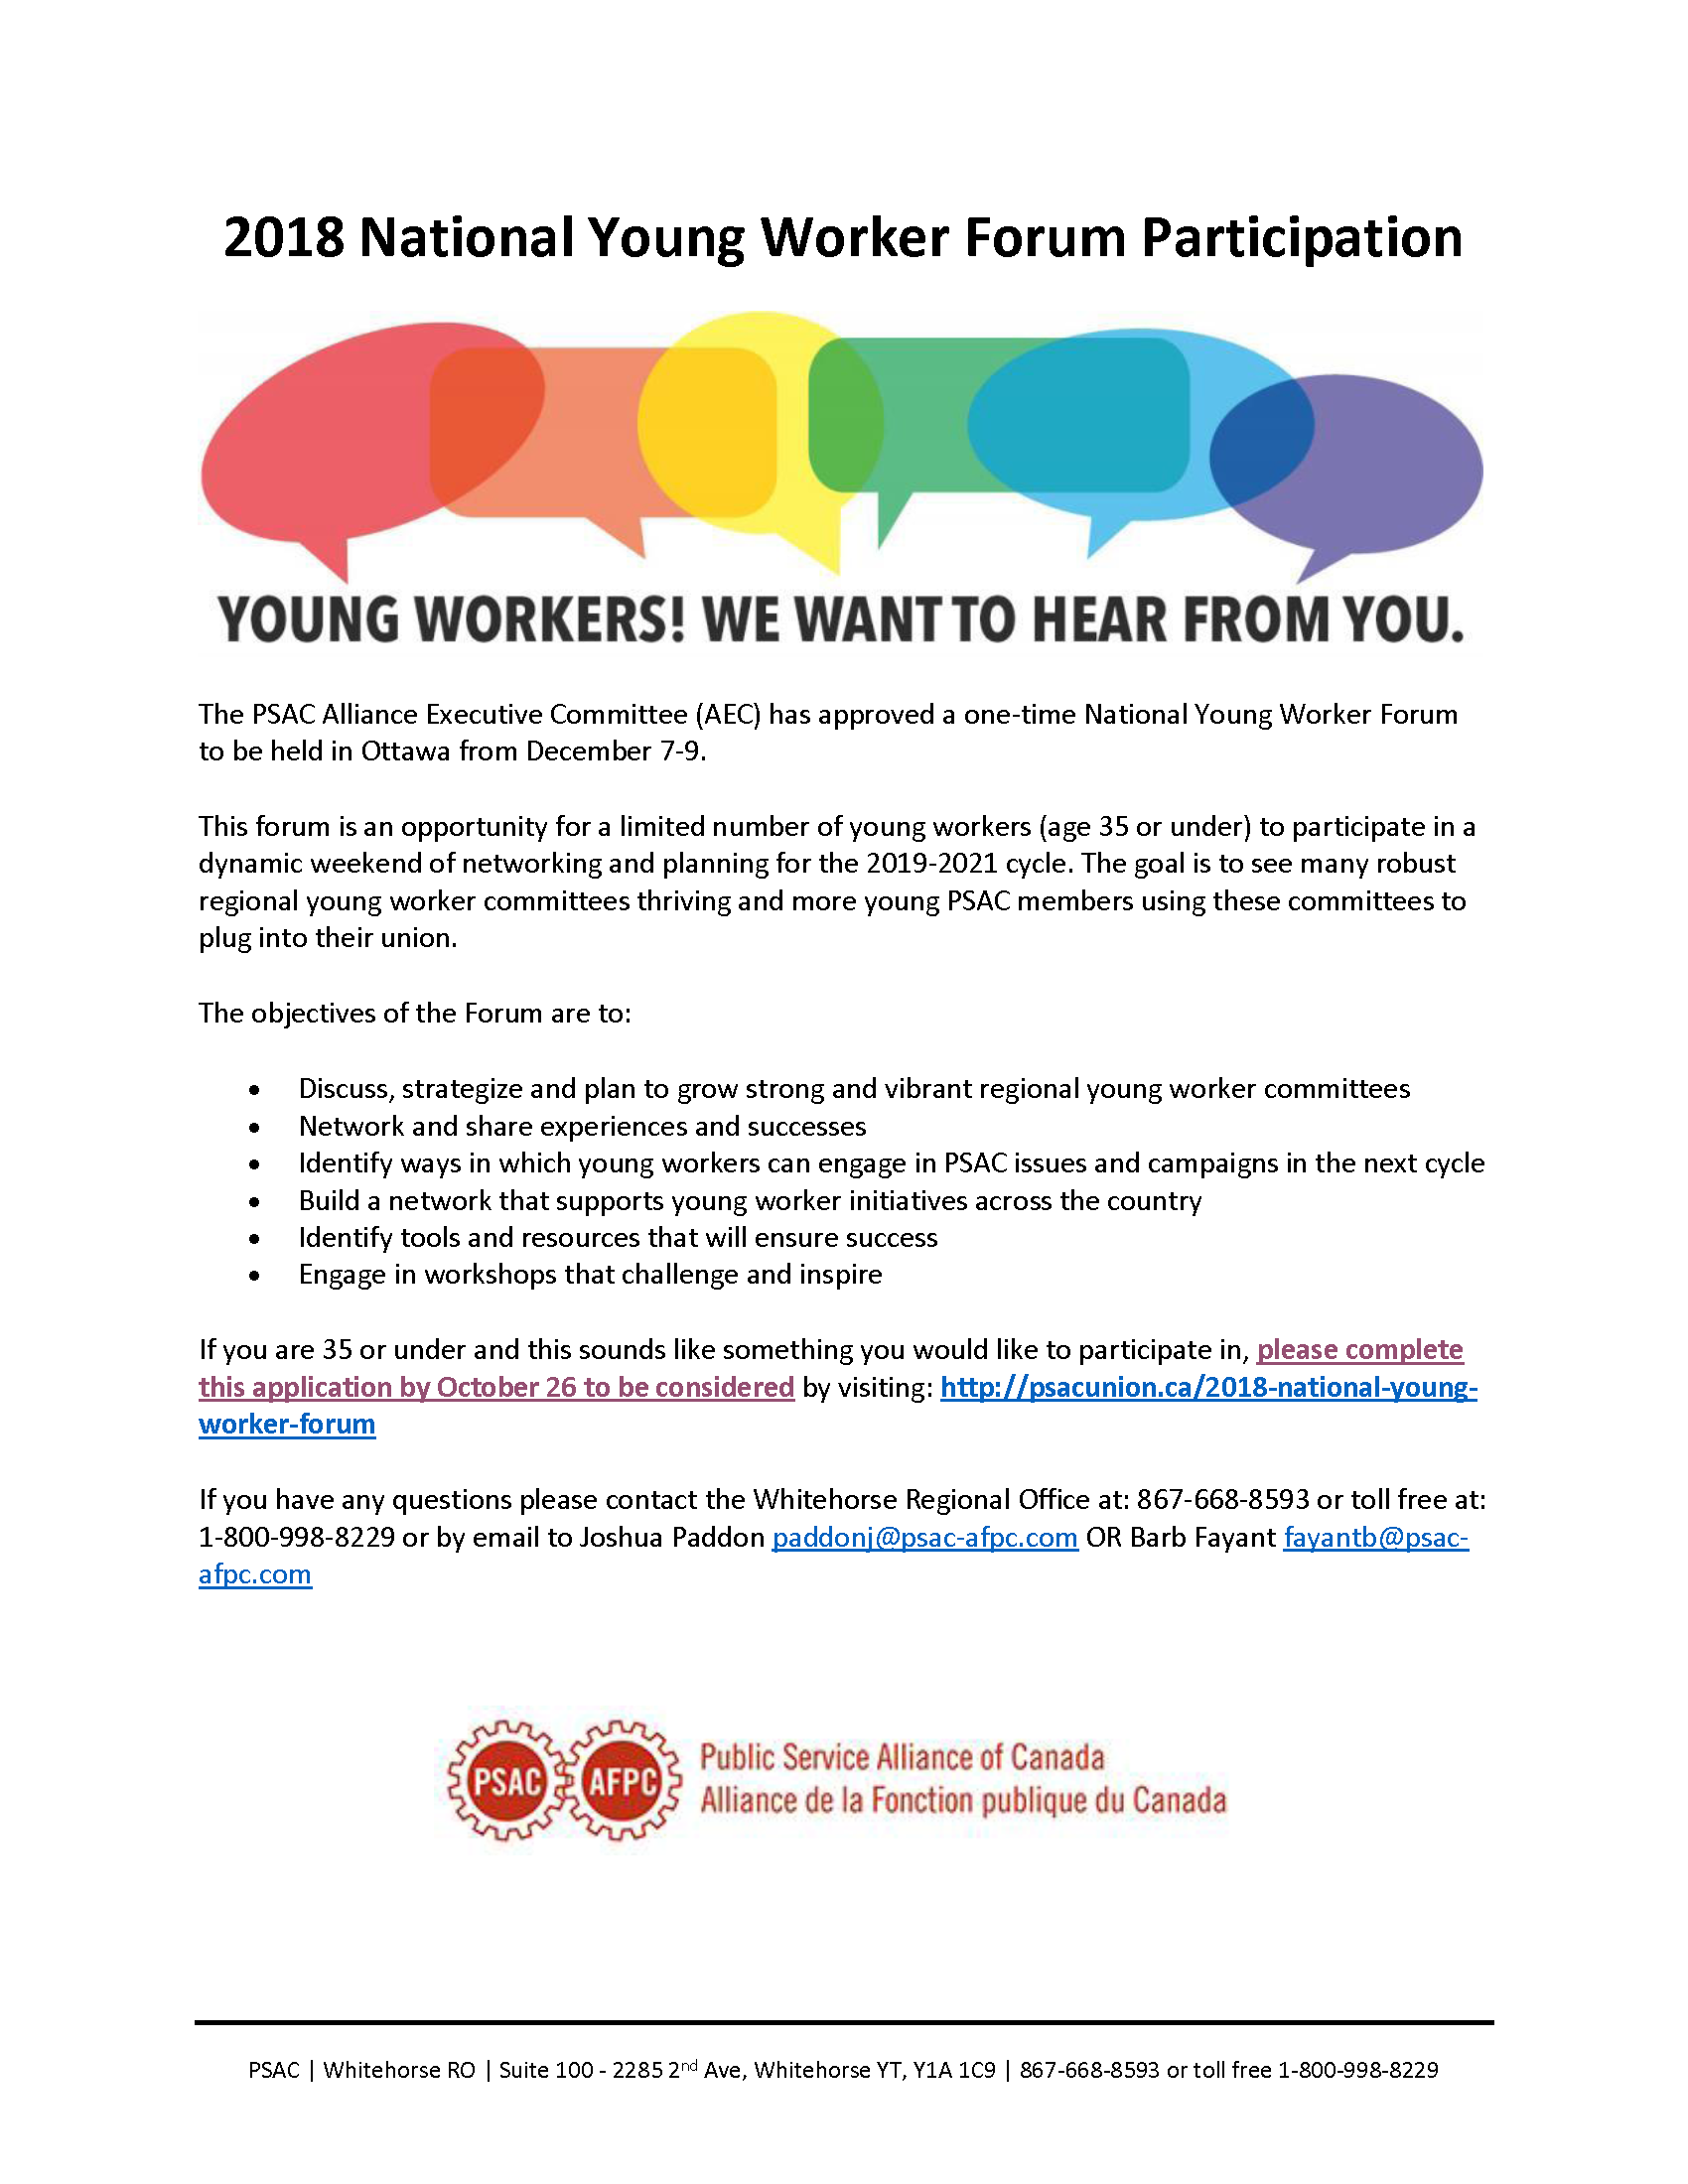 Young Workers! We Want To Hear From You  - Yukon Employees